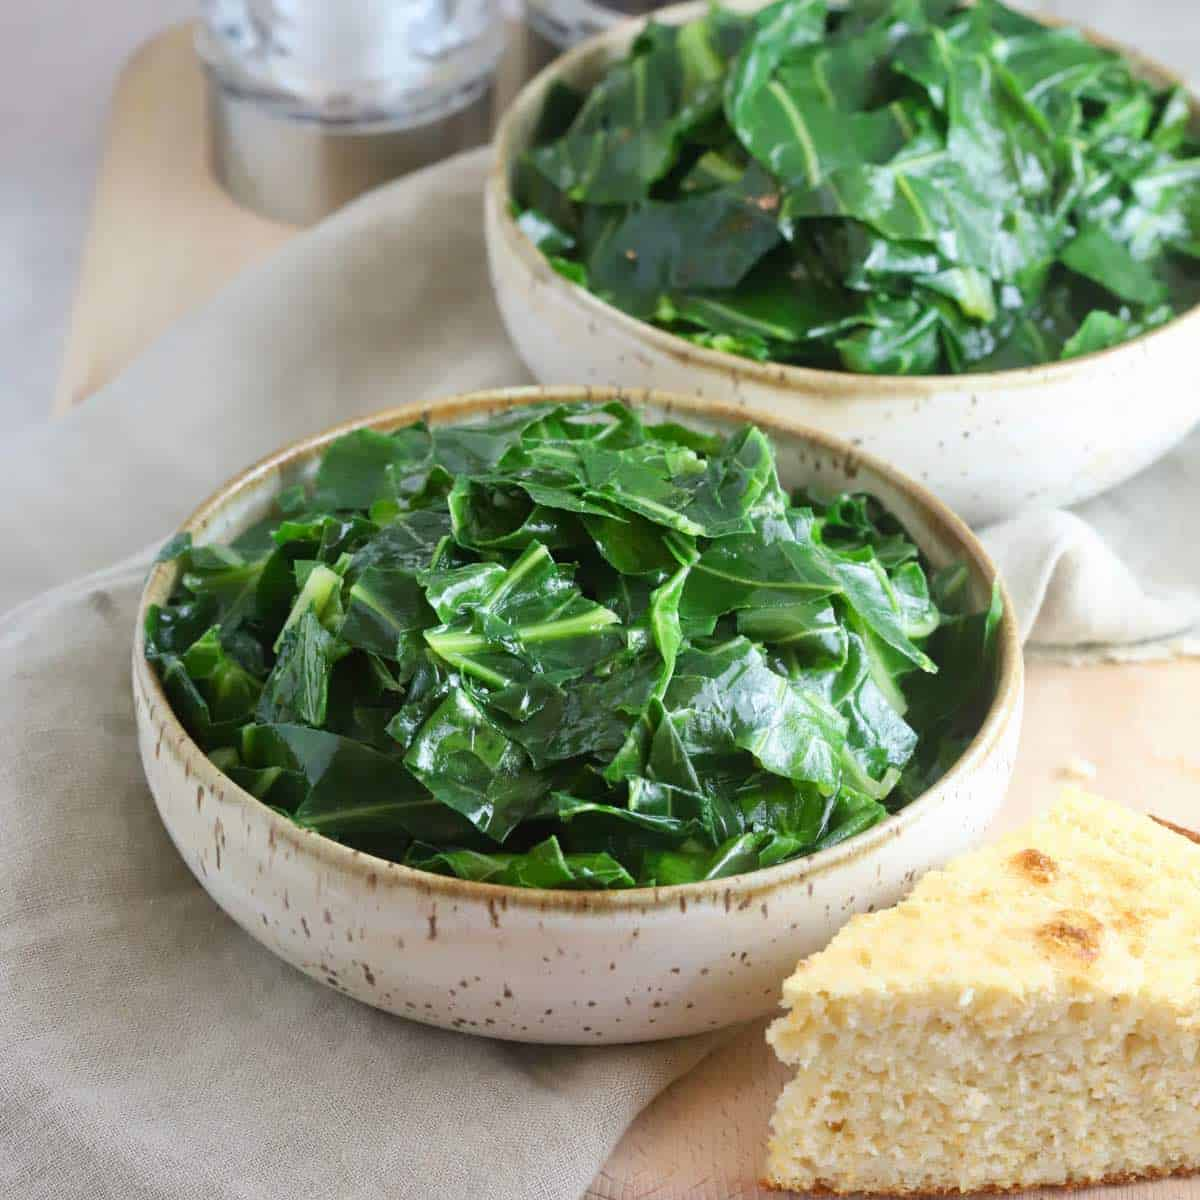 Two bowls of cooked collard greens.